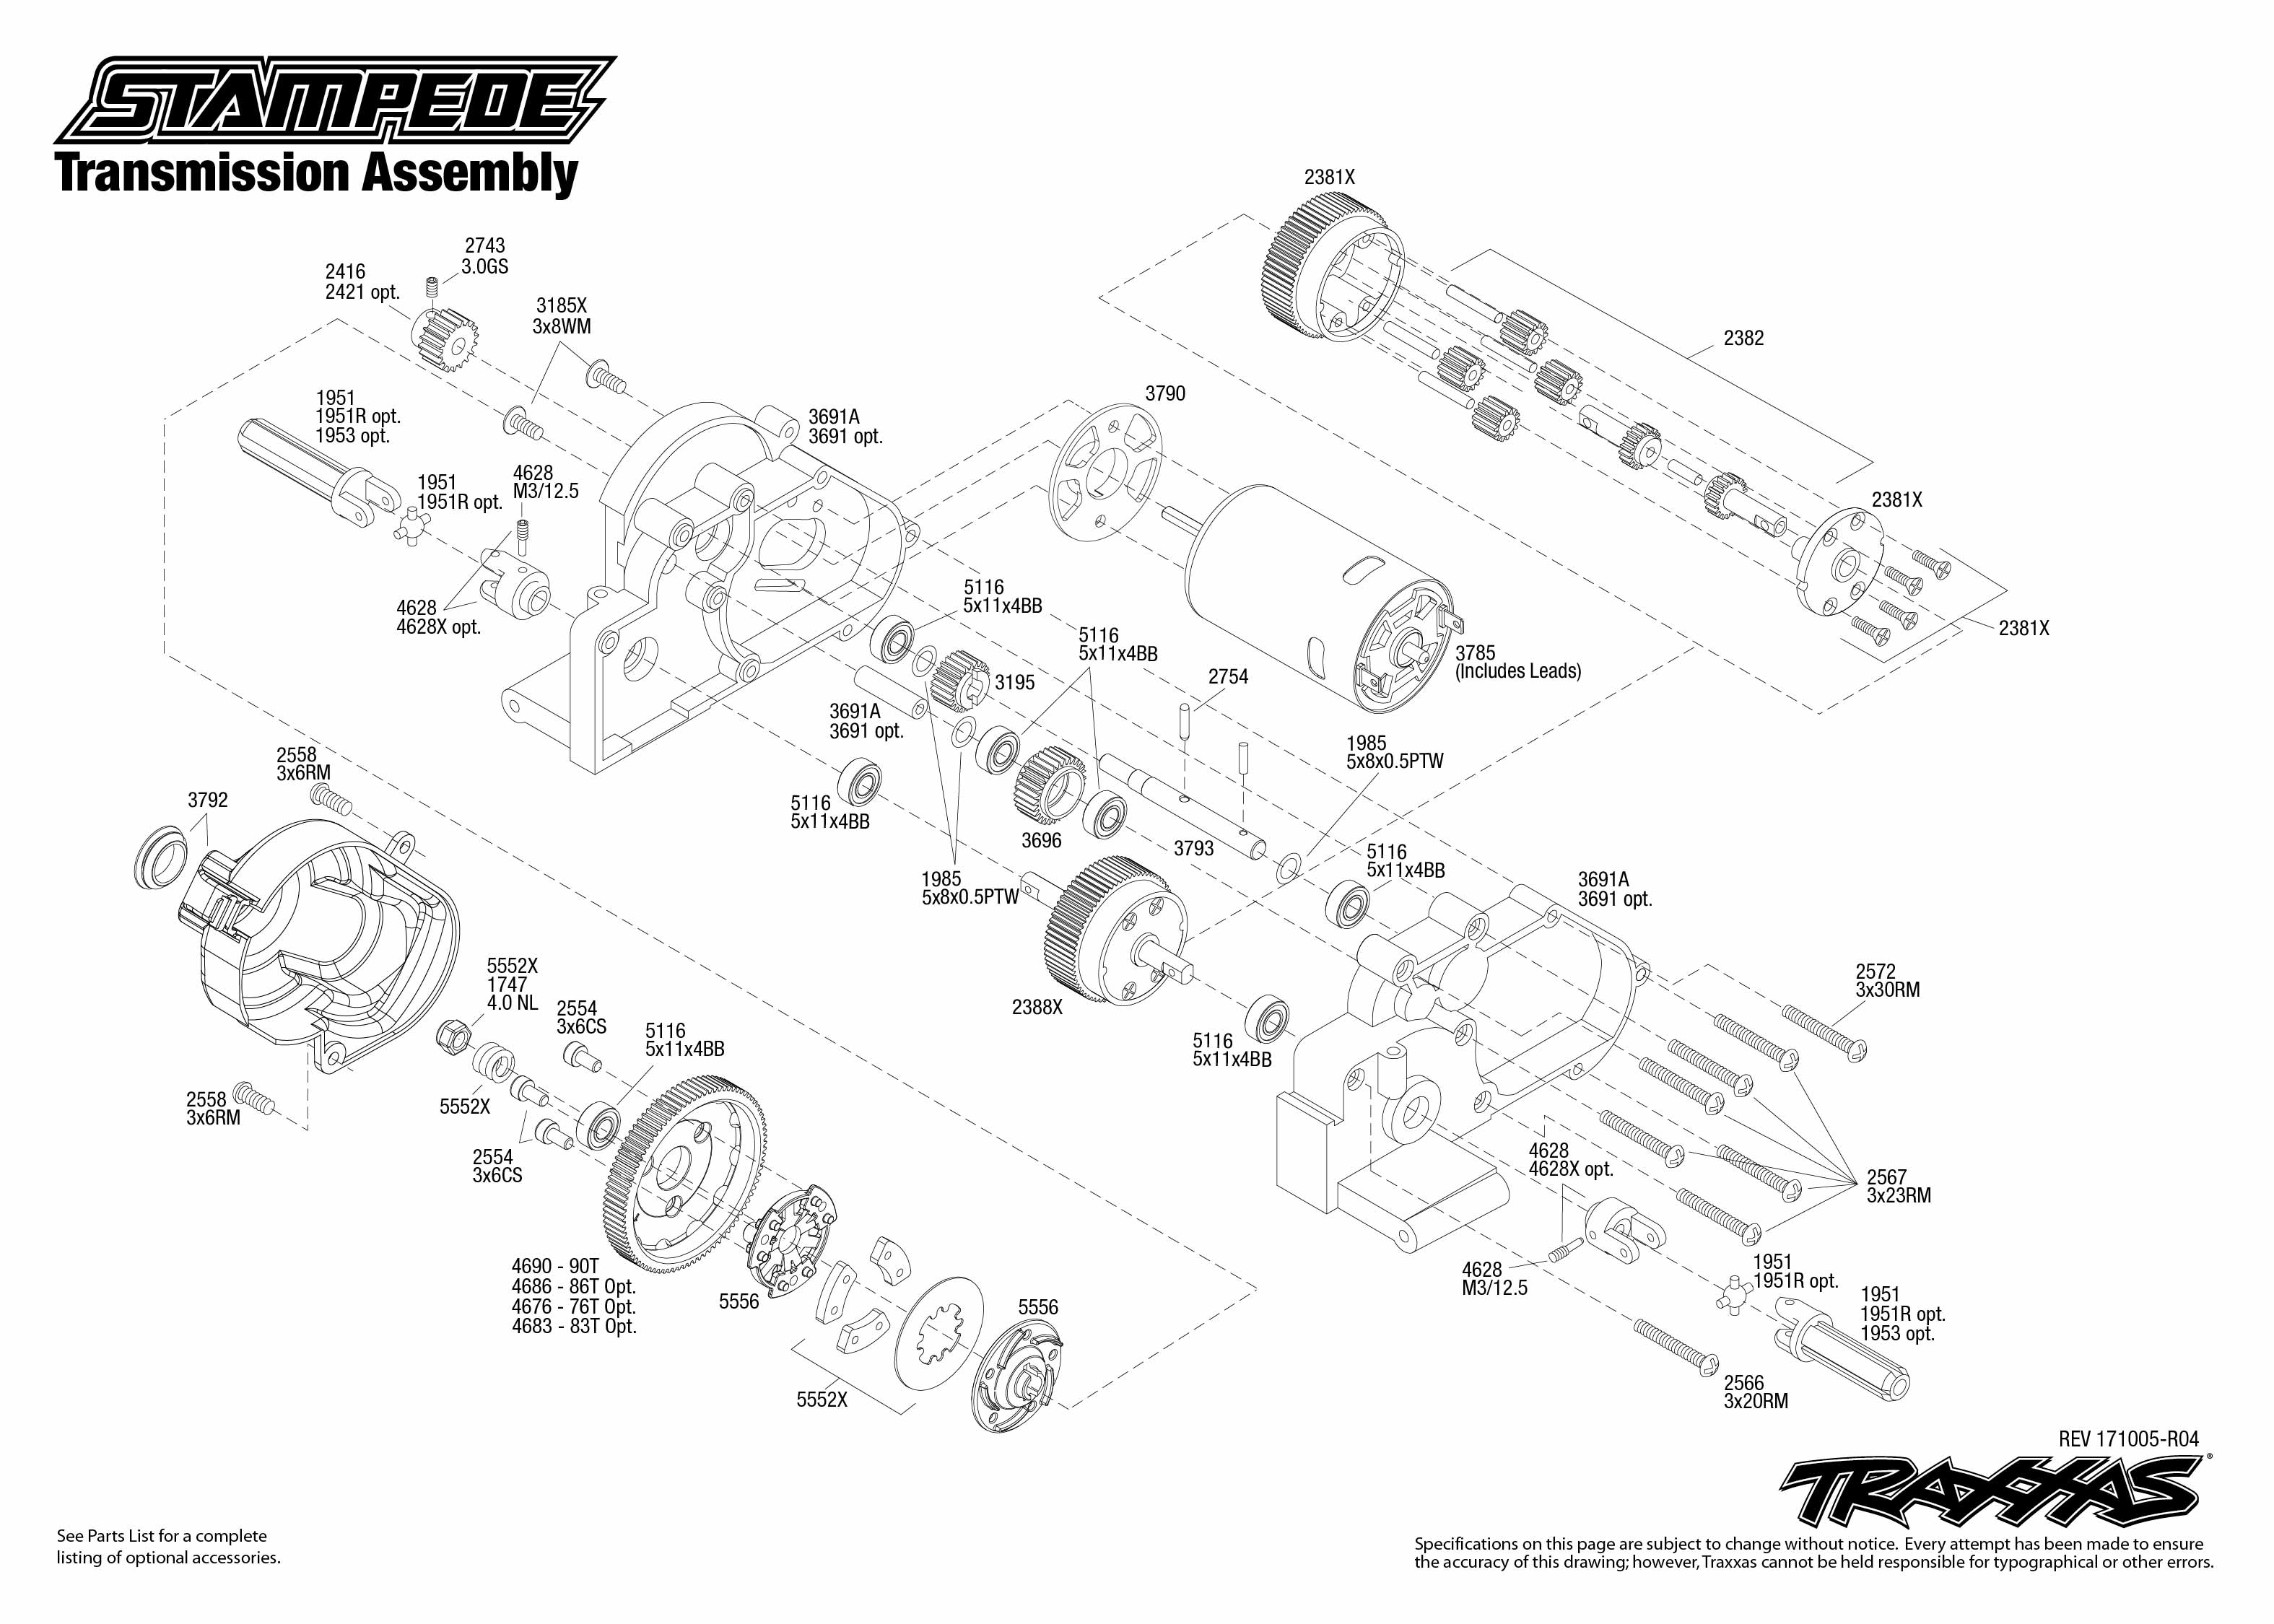 Stampede 36054 1 Transmission Assembly Exploded View